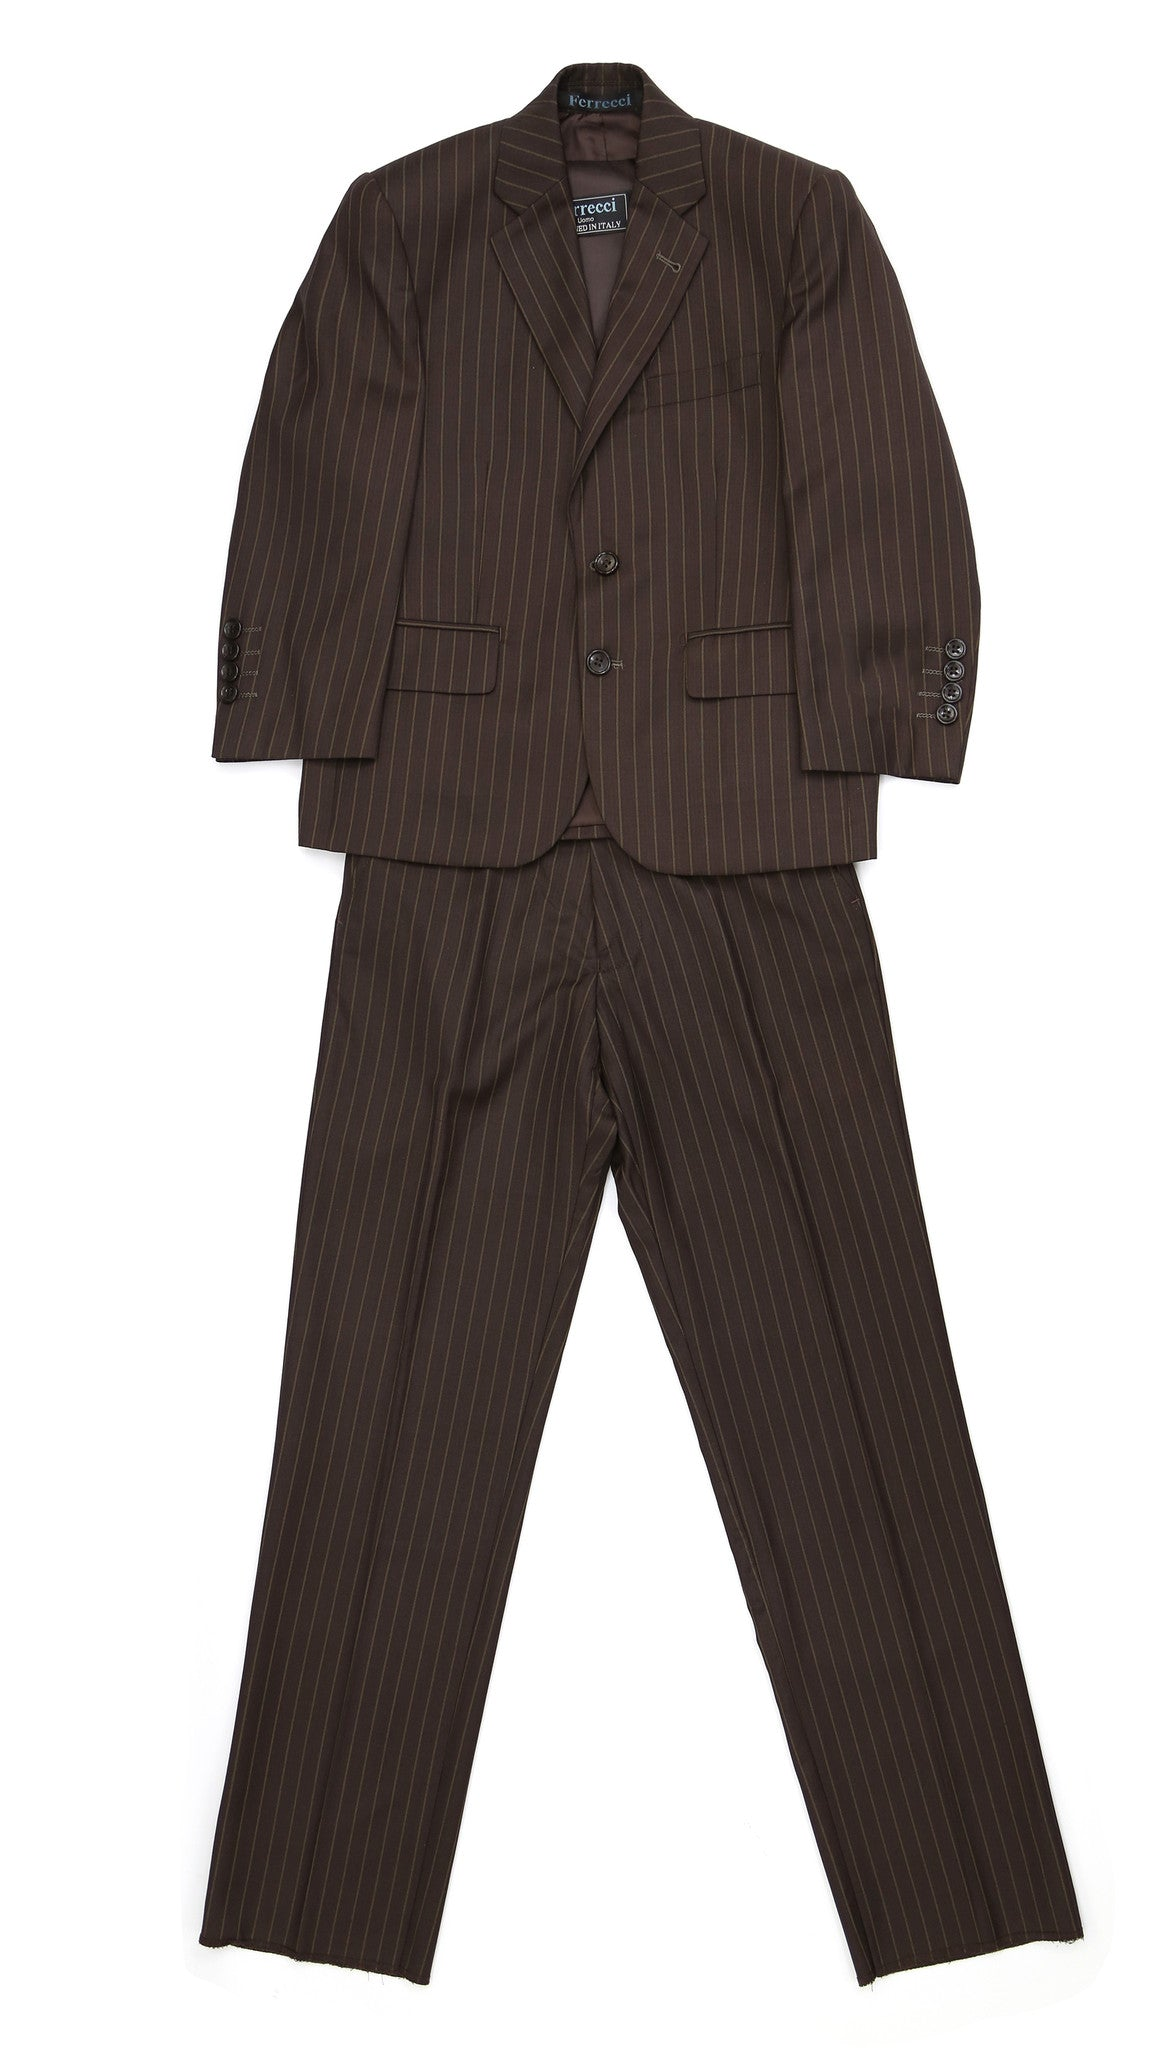 Ferrecci USA Boys Brown 3pc Vested Suit